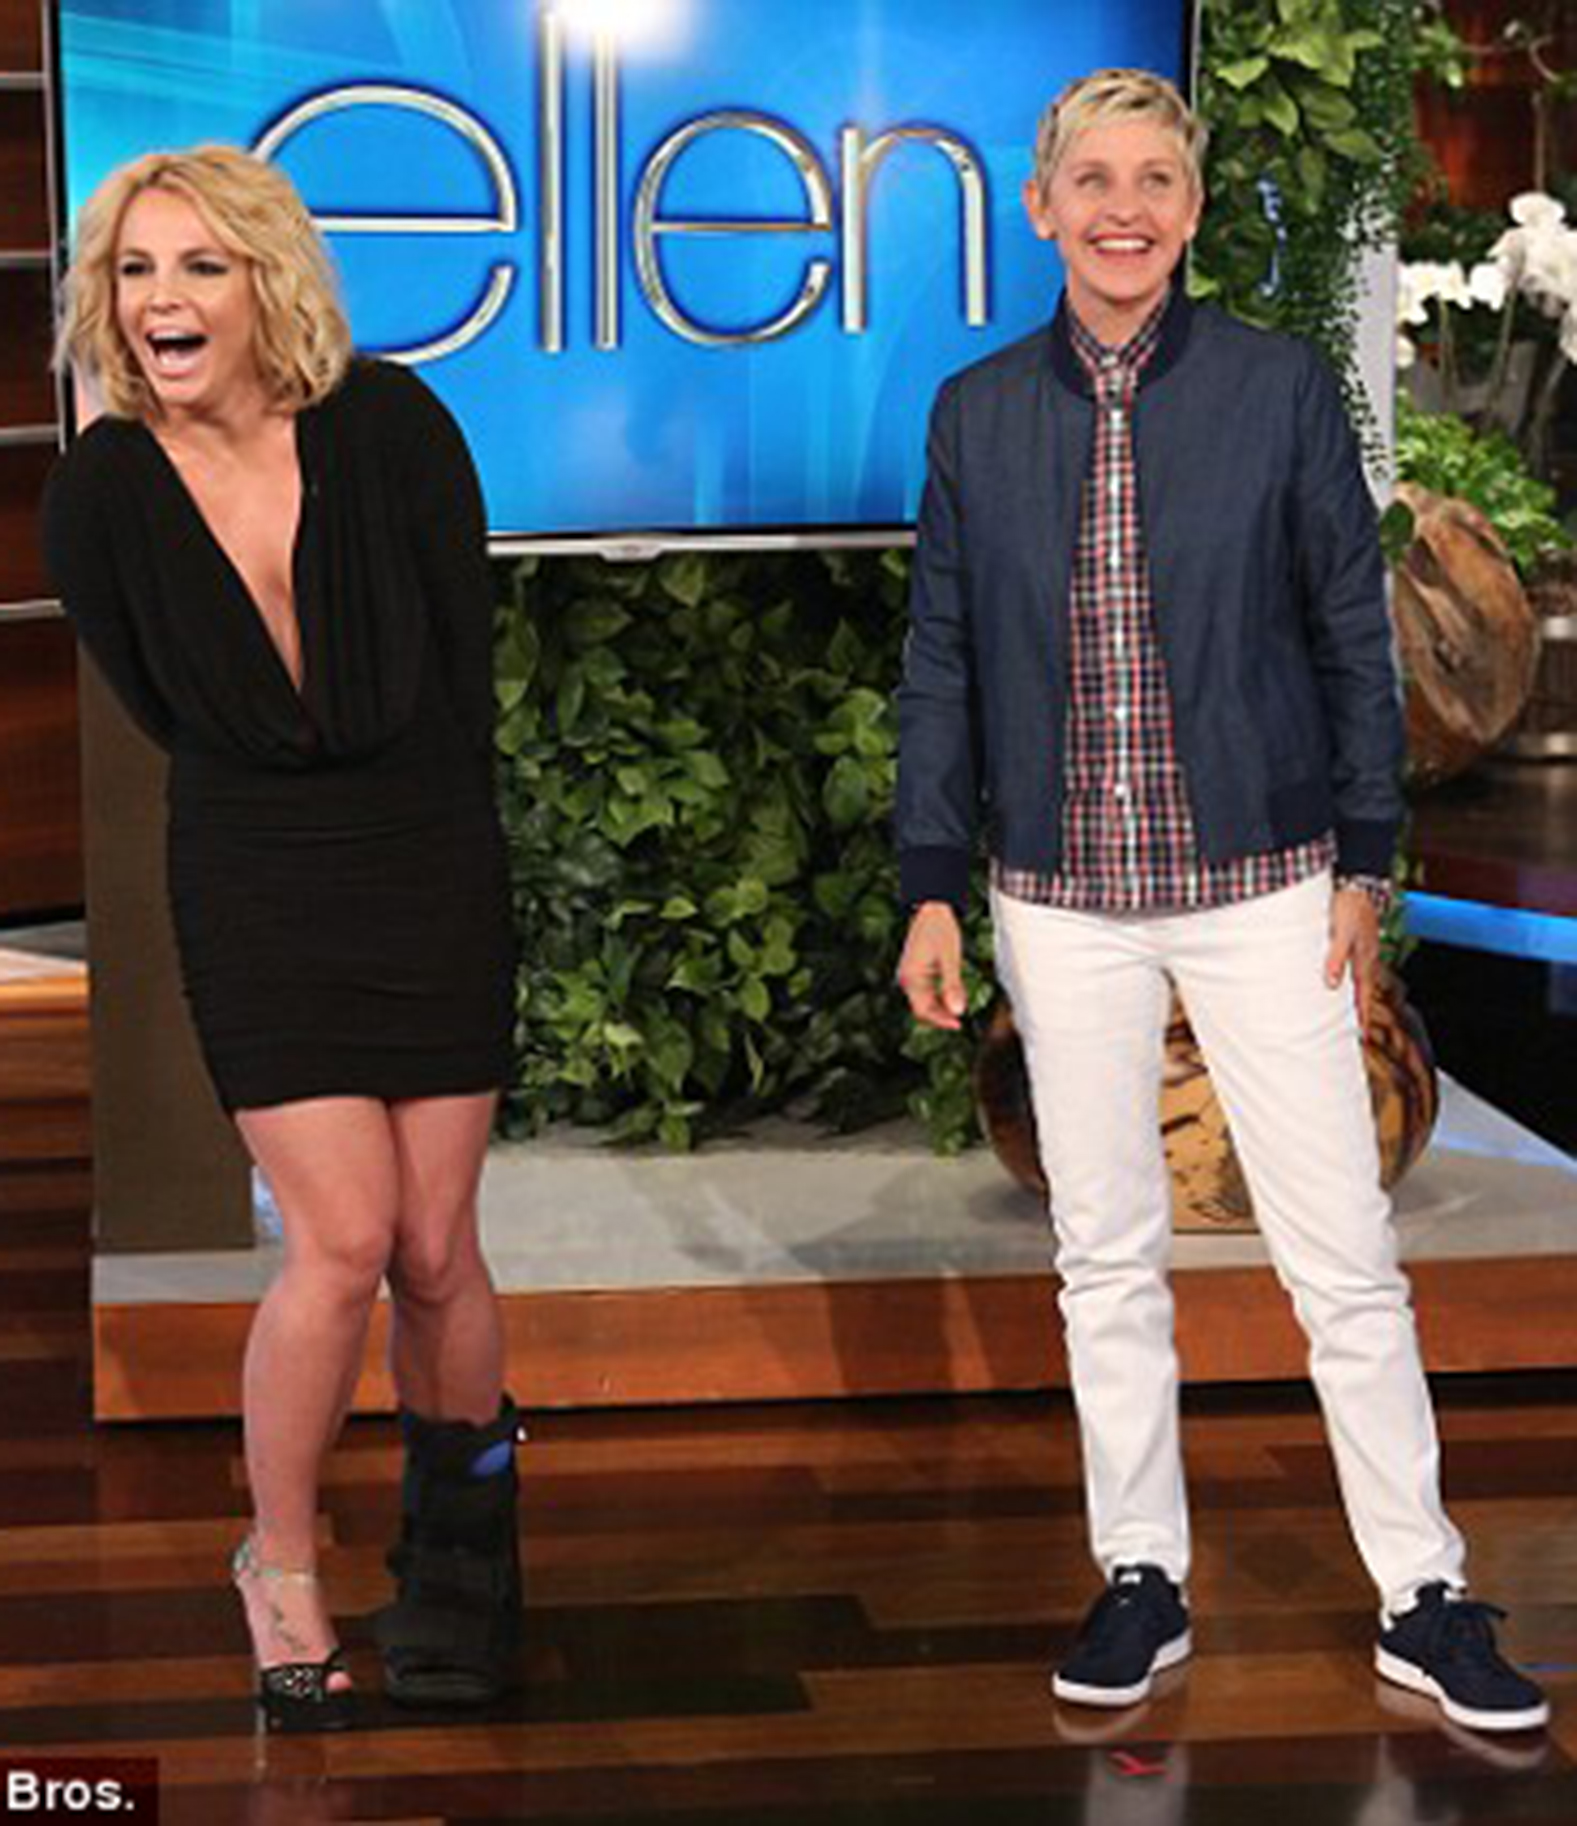 Britney Spears on Ellen Degeneges